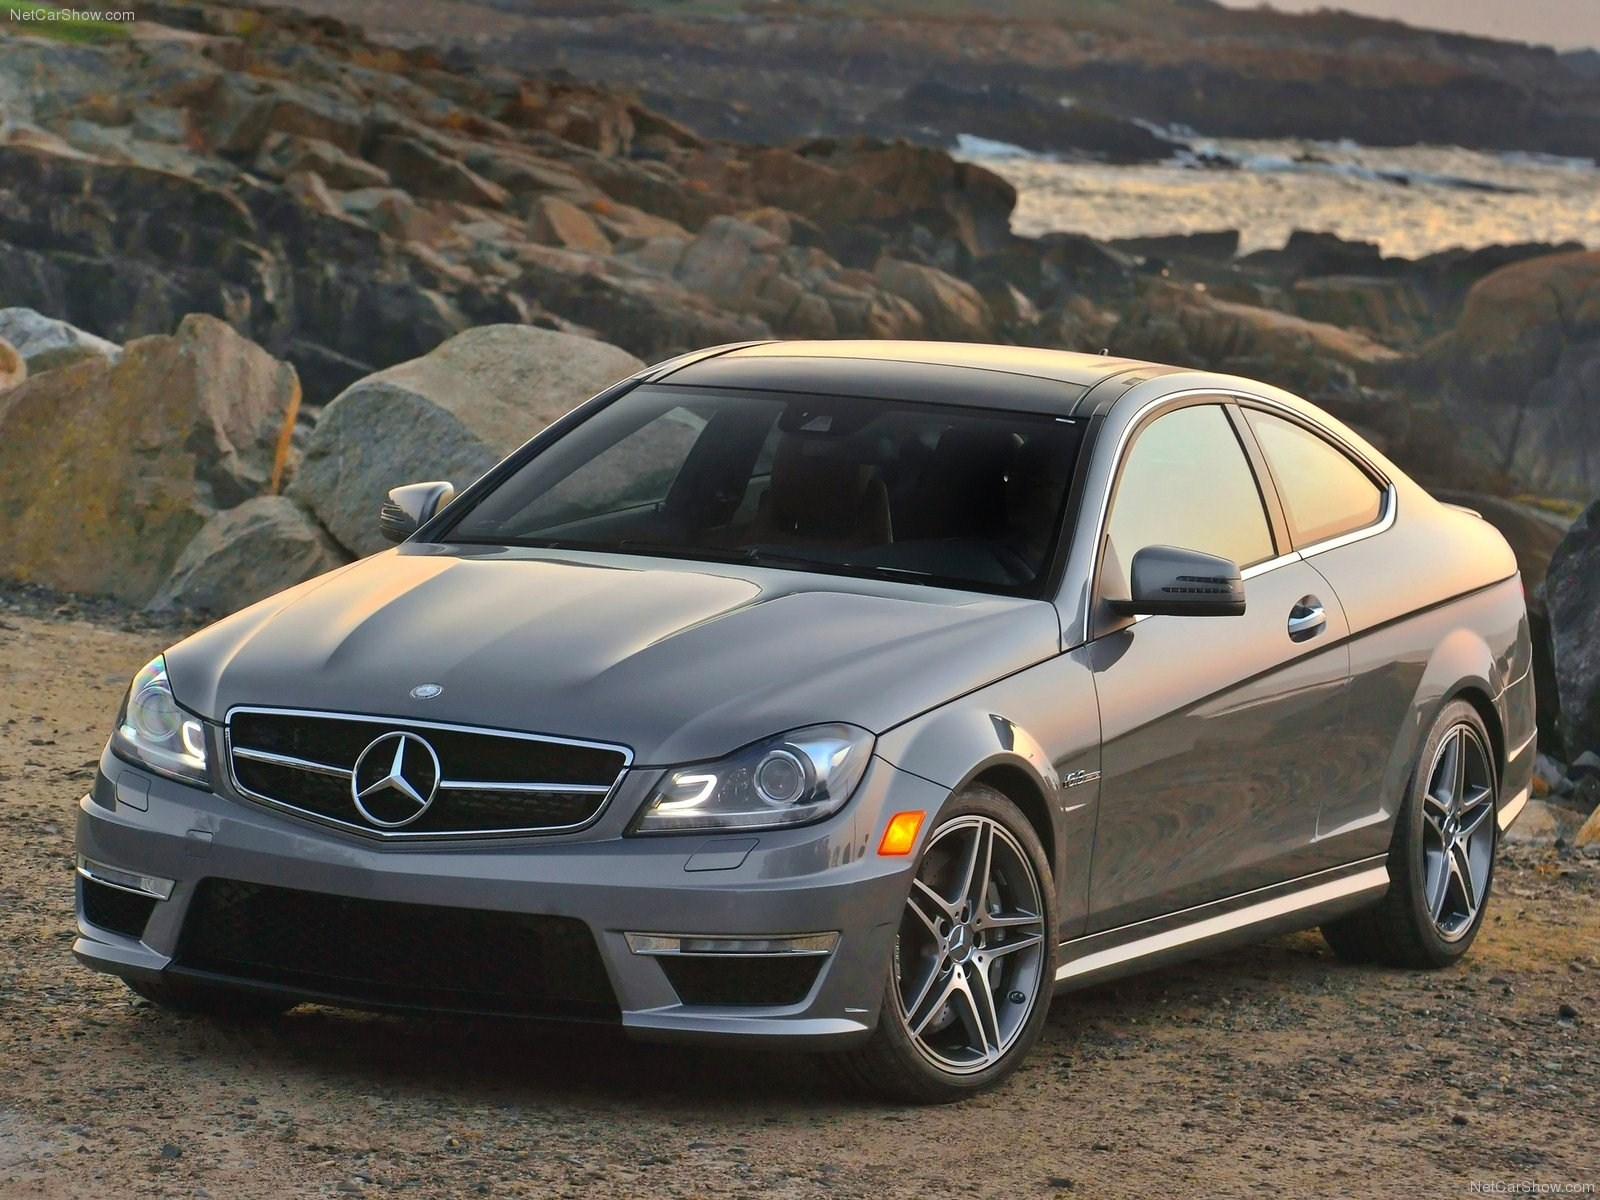 mercedes c63 amg coupe cars prices specs luxury cars wallpaper blog. Black Bedroom Furniture Sets. Home Design Ideas